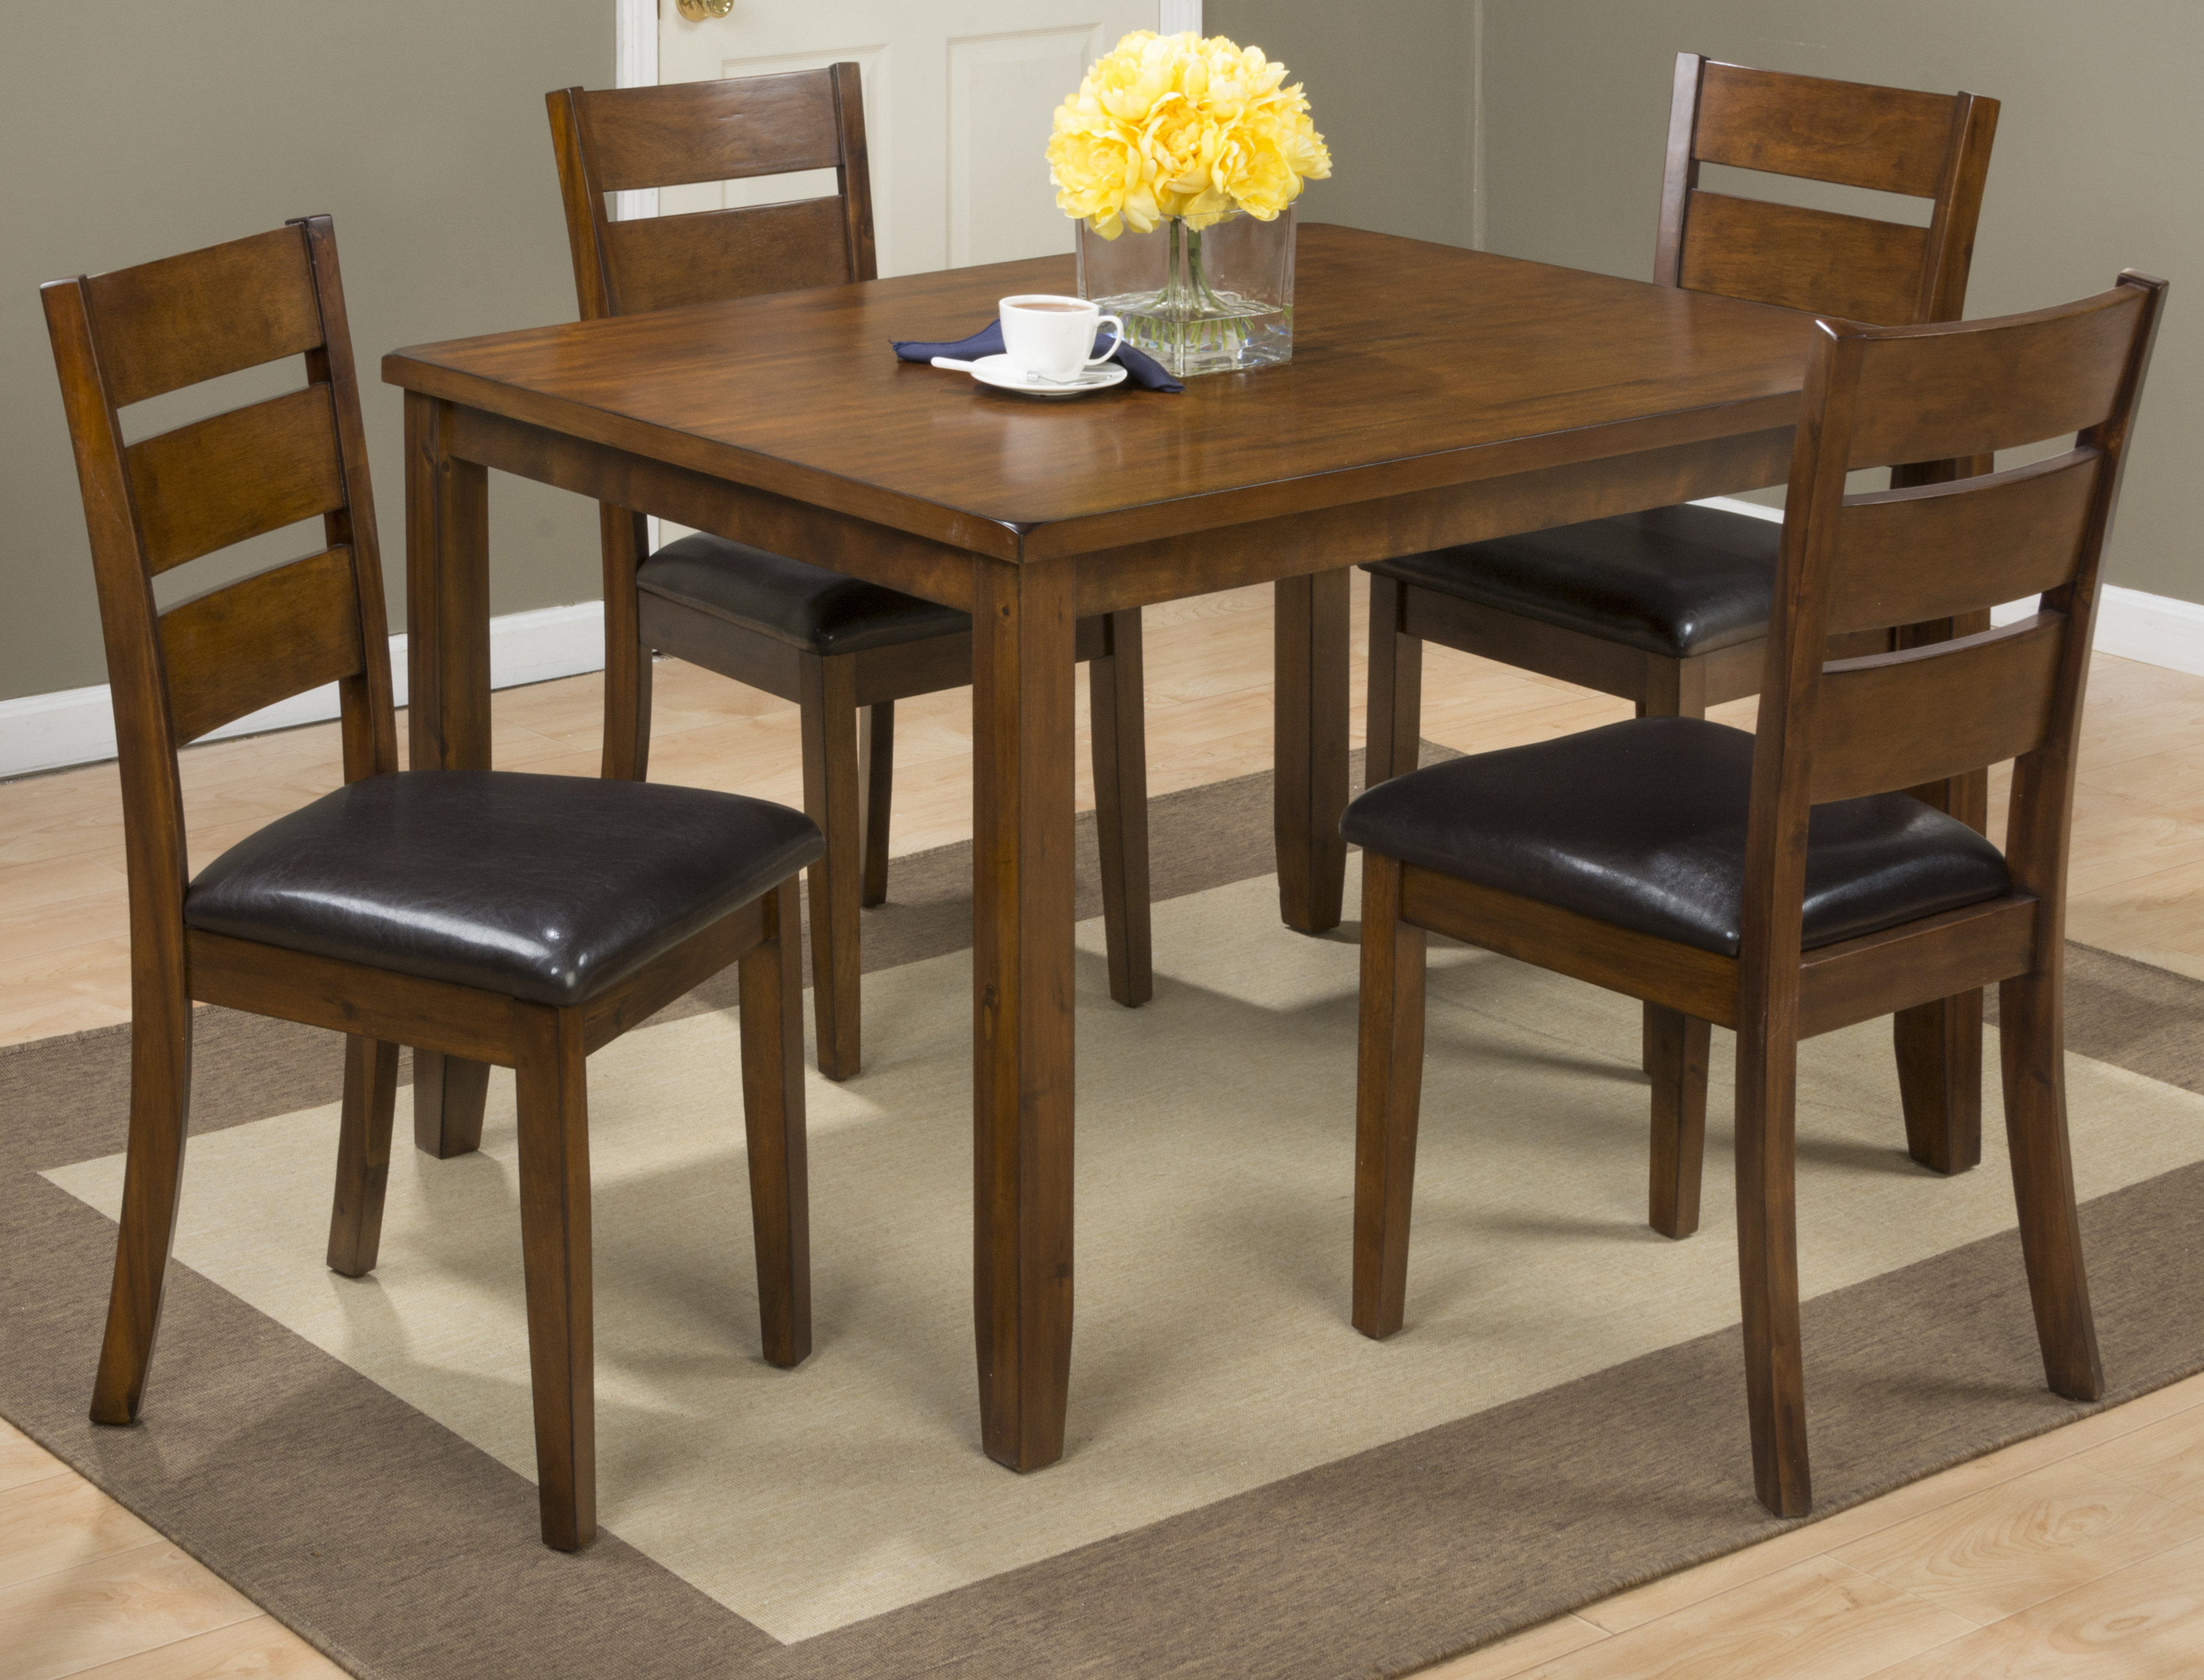 Amir 5 Piece Solid Wood Dining Set Regarding Most Popular Hanska Wooden 5 Piece Counter Height Dining Table Sets (Set Of 5) (Image 2 of 20)